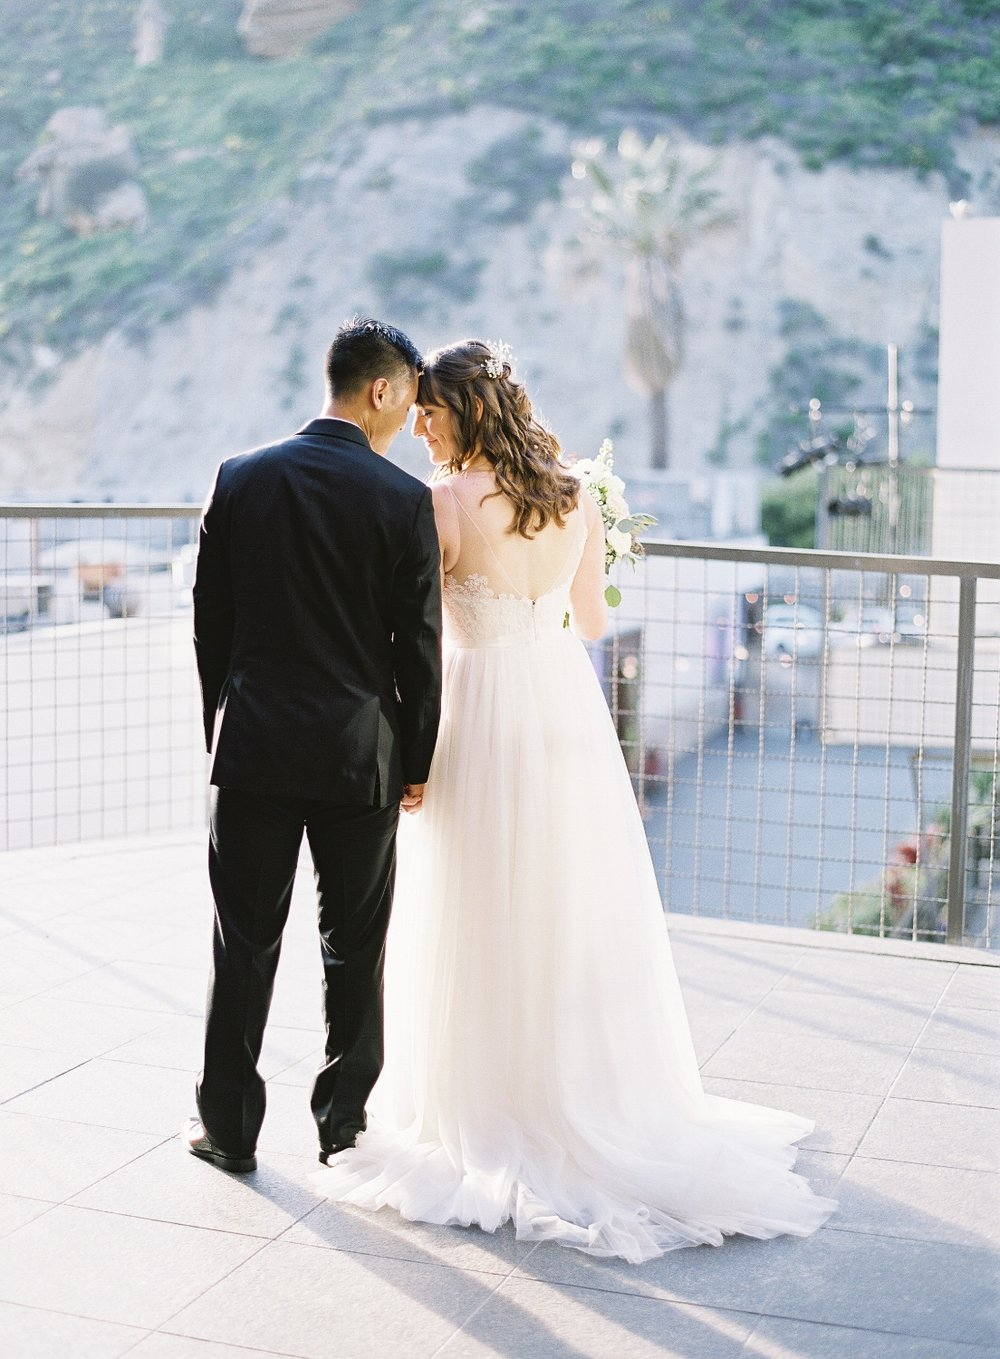 Wedding Photo with Couple from Behind. Bridal Hairstyles and makeup by Vanity Belle in Orange County (Costa Mesa) and San Diego (La Jolla)